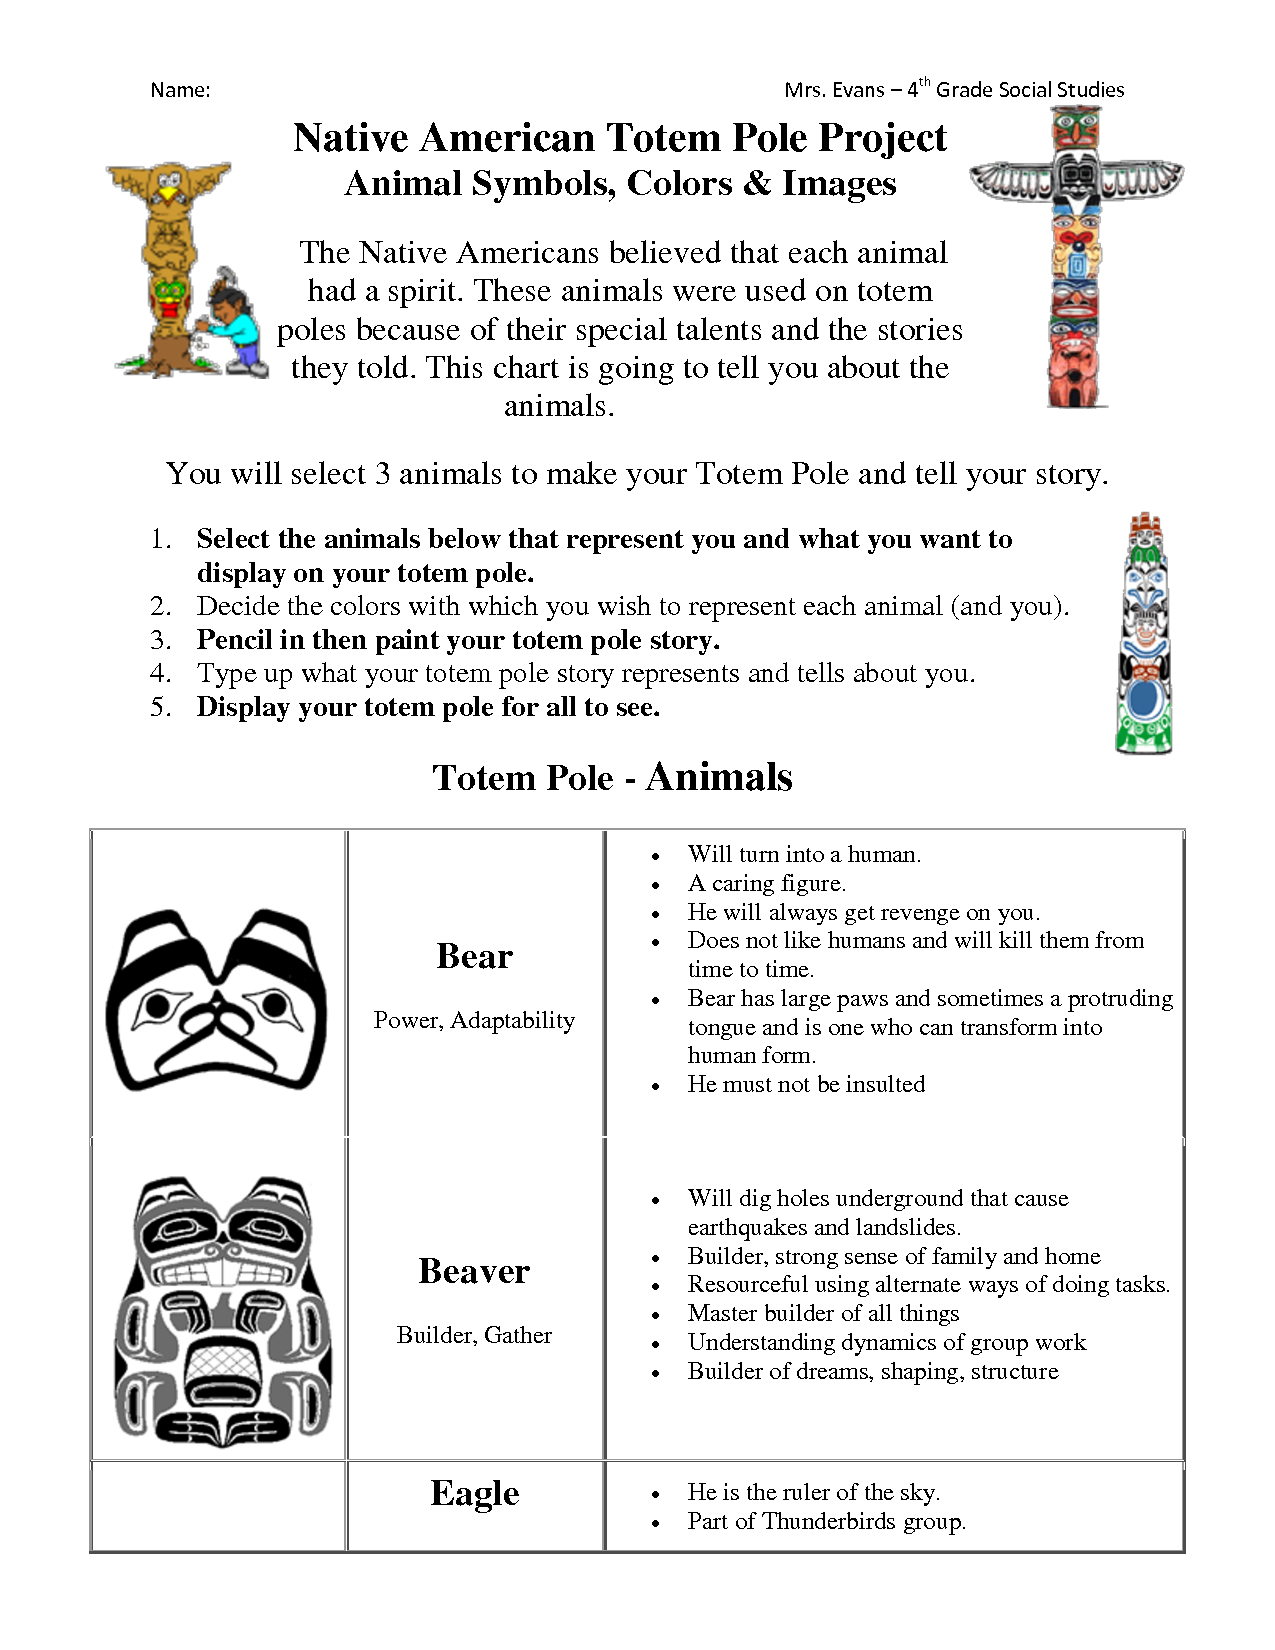 Totem pole animal pictures and meanings yahoo image search totem pole animal pictures and meanings yahoo image search results school art ideas pinterest totems image search and animal biocorpaavc Images